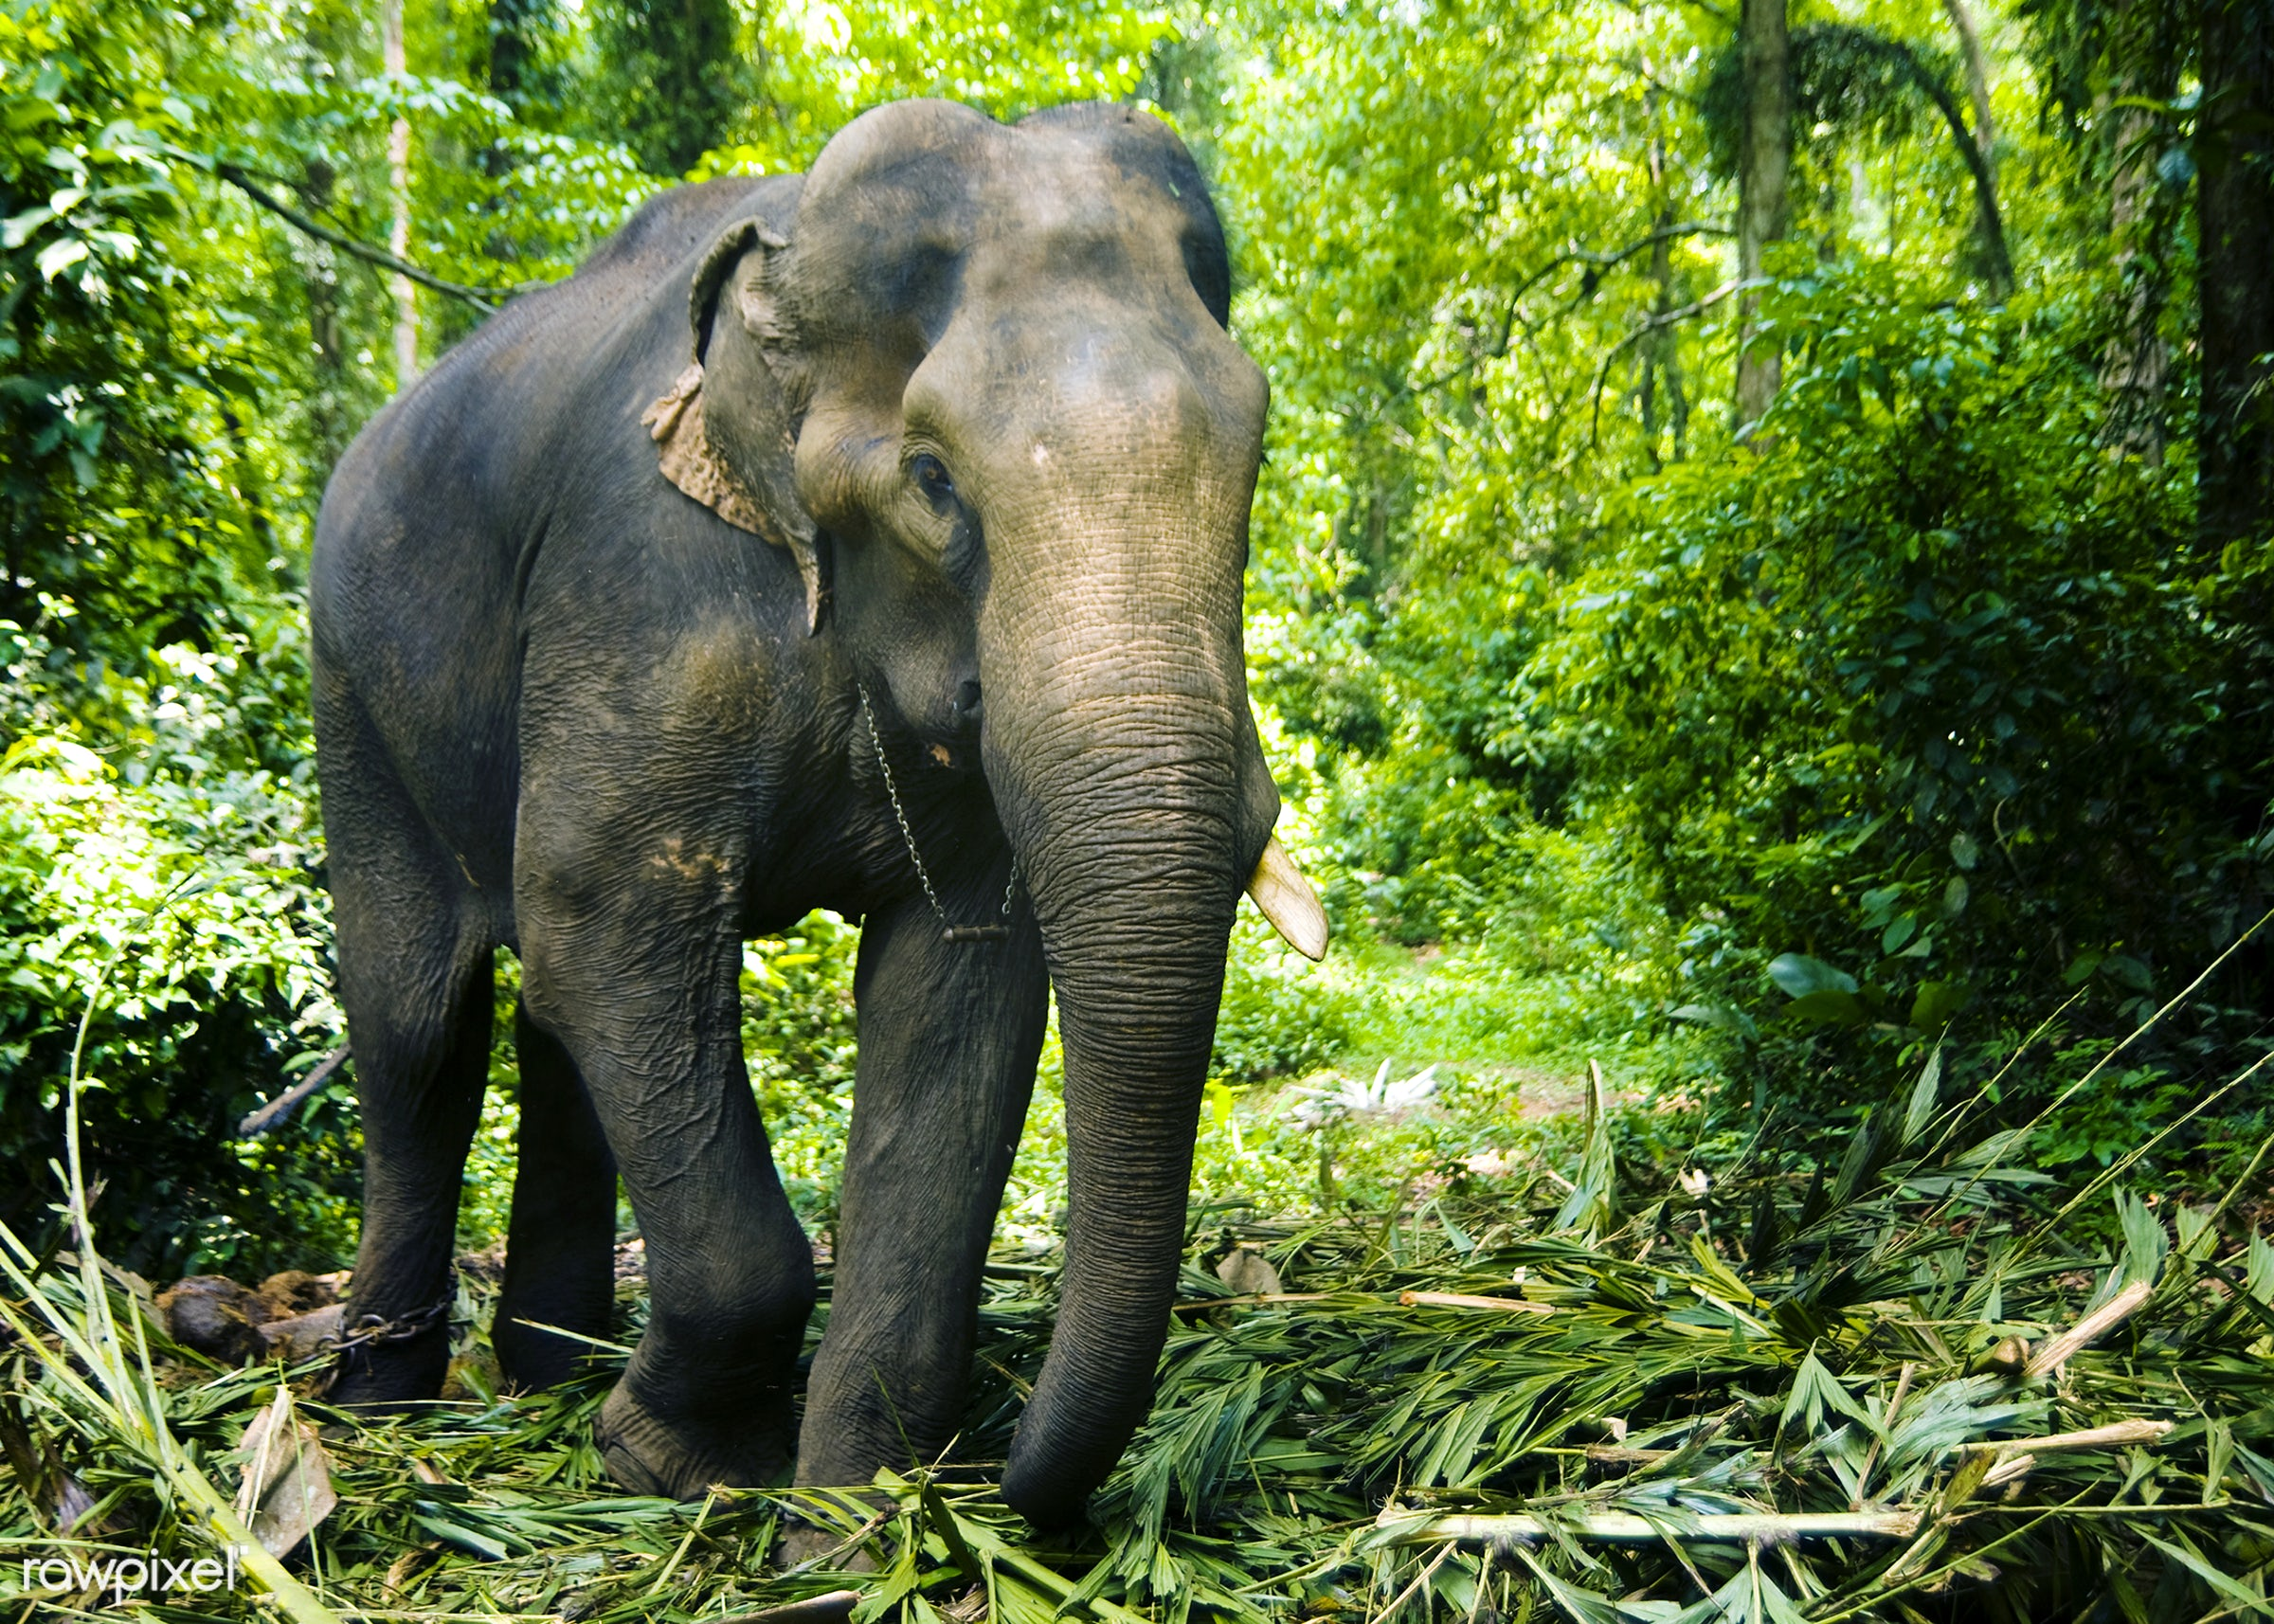 Elephant working in the forest, Kerala, India. - elephant, activity, agriculture, animal, animal skin, animals, animals and...